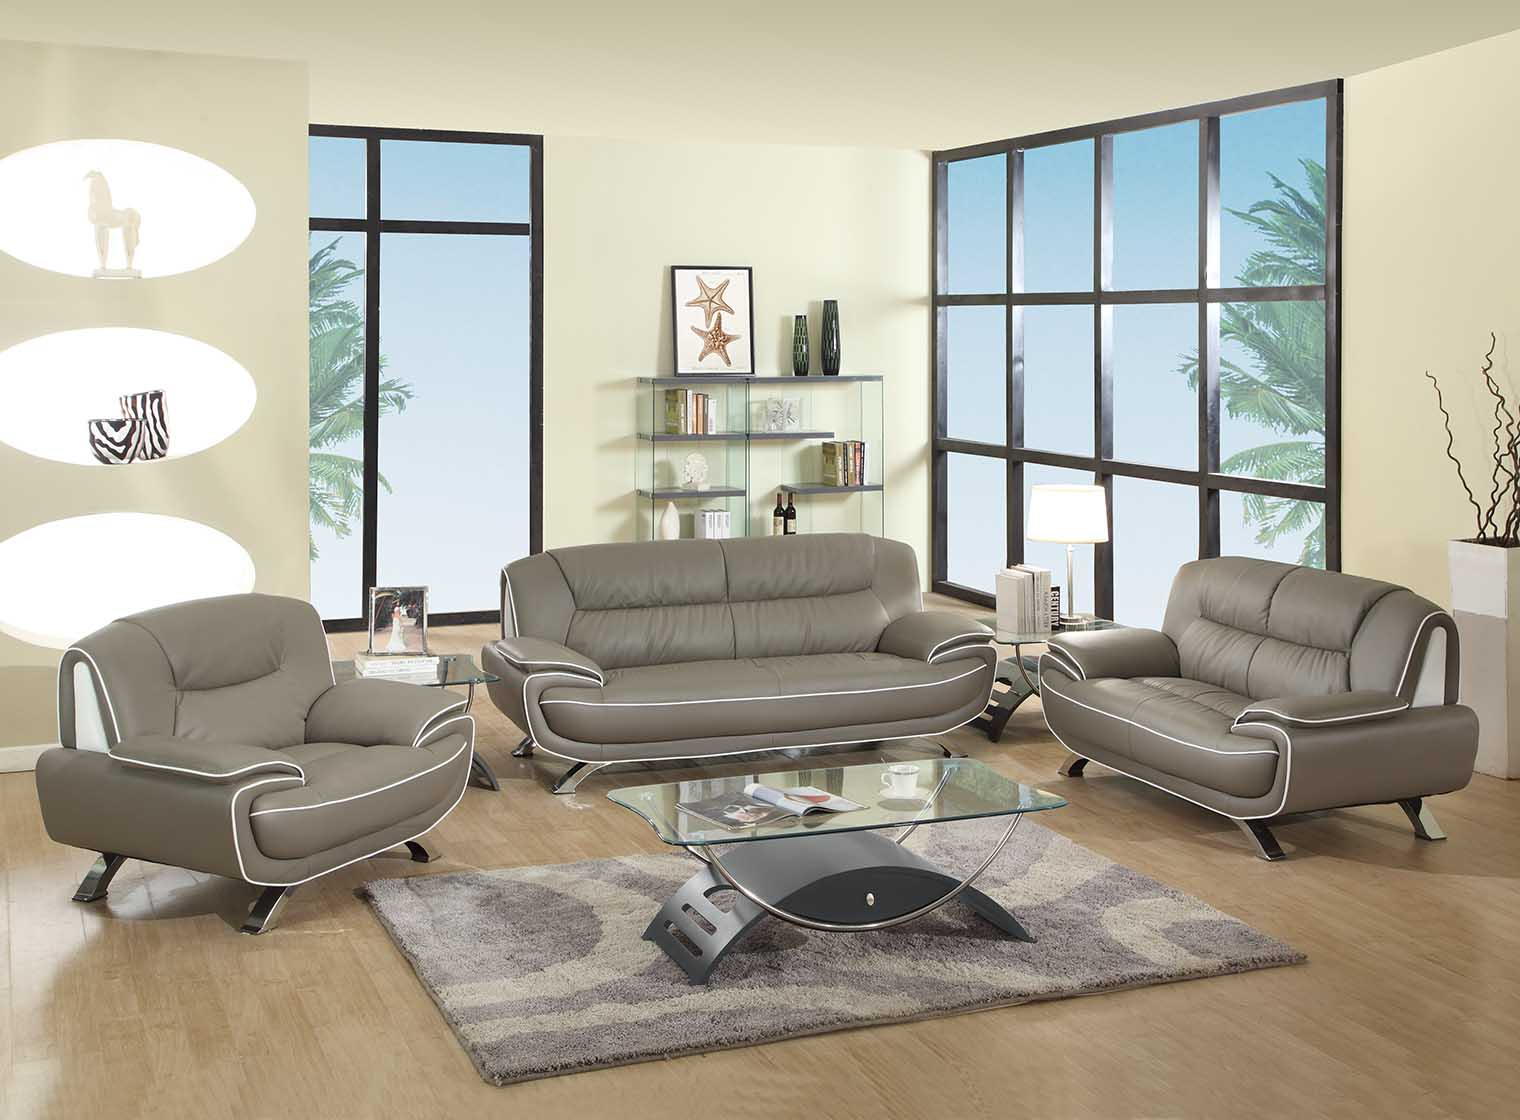 Amalfi grey and white leather living room las vegas for Gray leather living room furniture